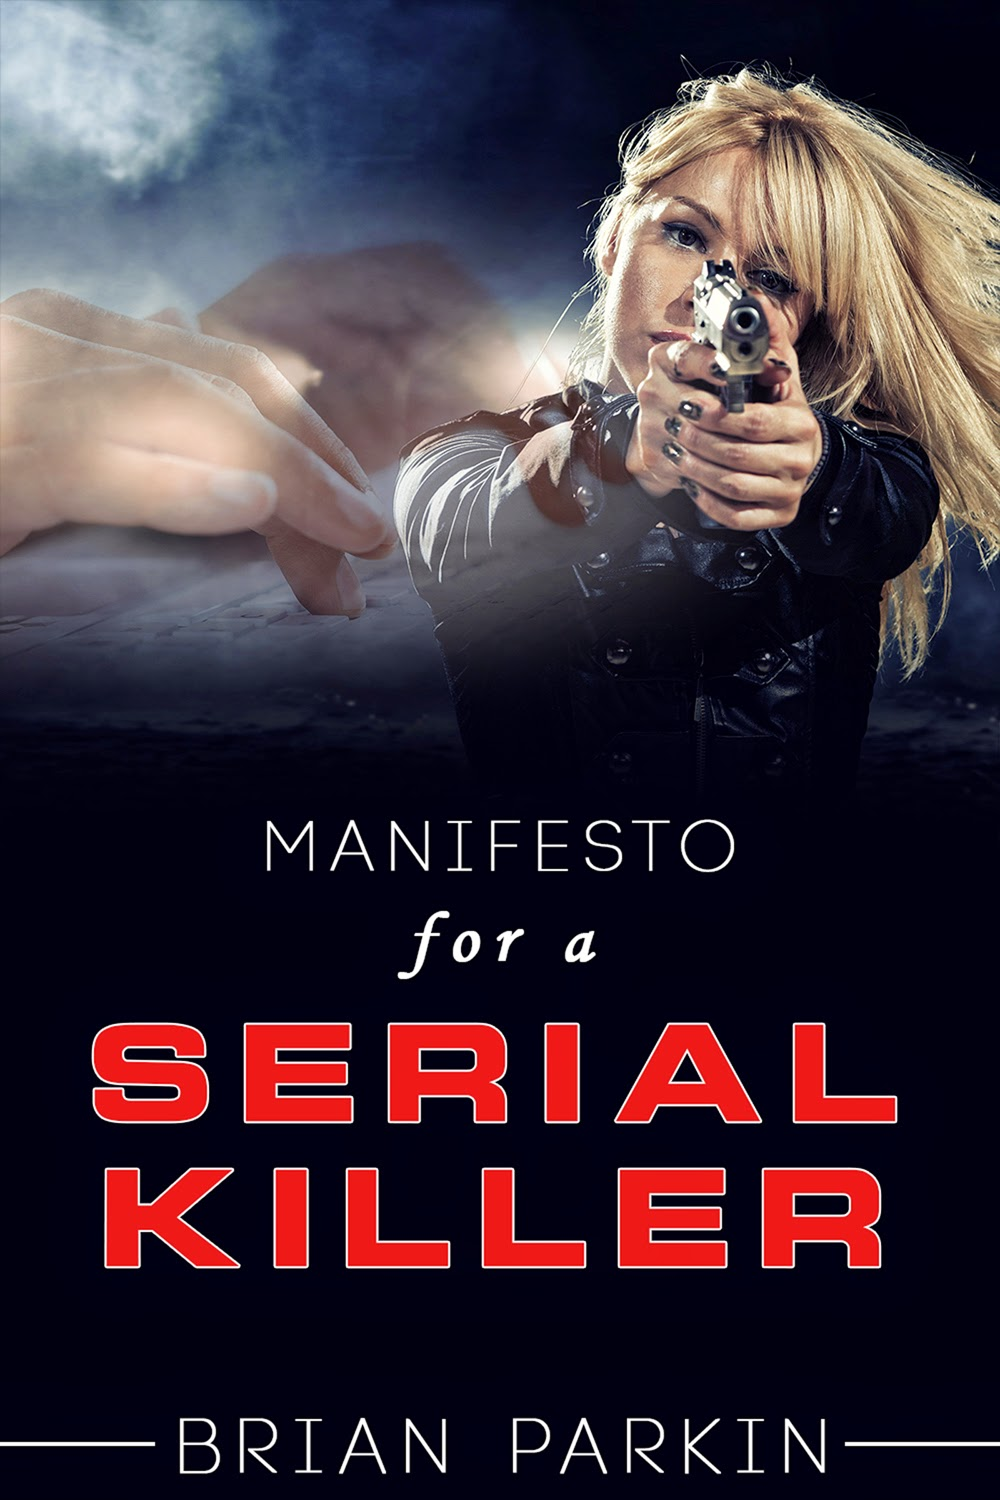 manifesto for a serial killer, brian parkin, serial killer, suspense, thriller, killing